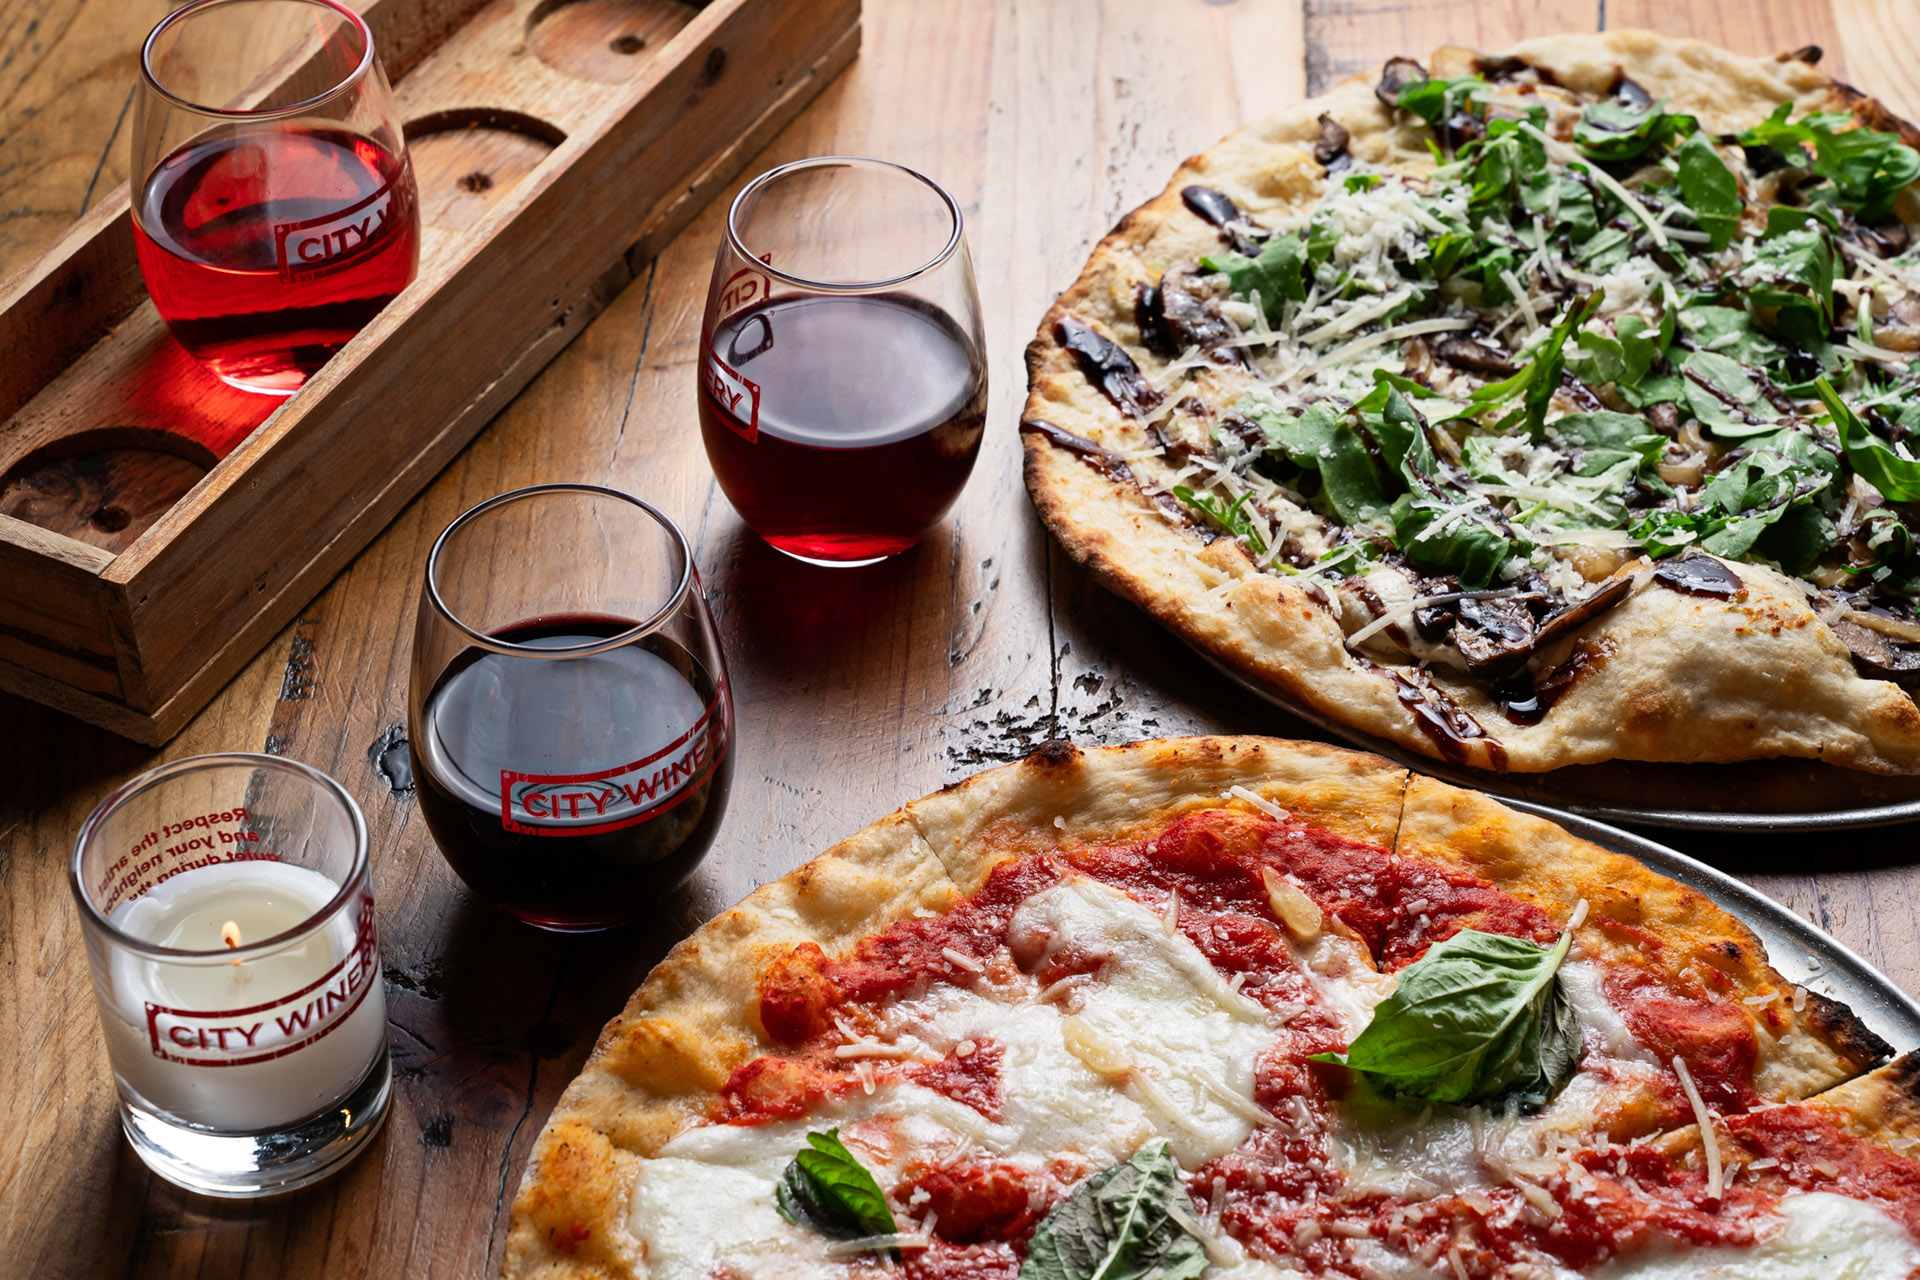 Two of the finest things in life, pizza and wine, at City Winery / Photo by Scott Suchman